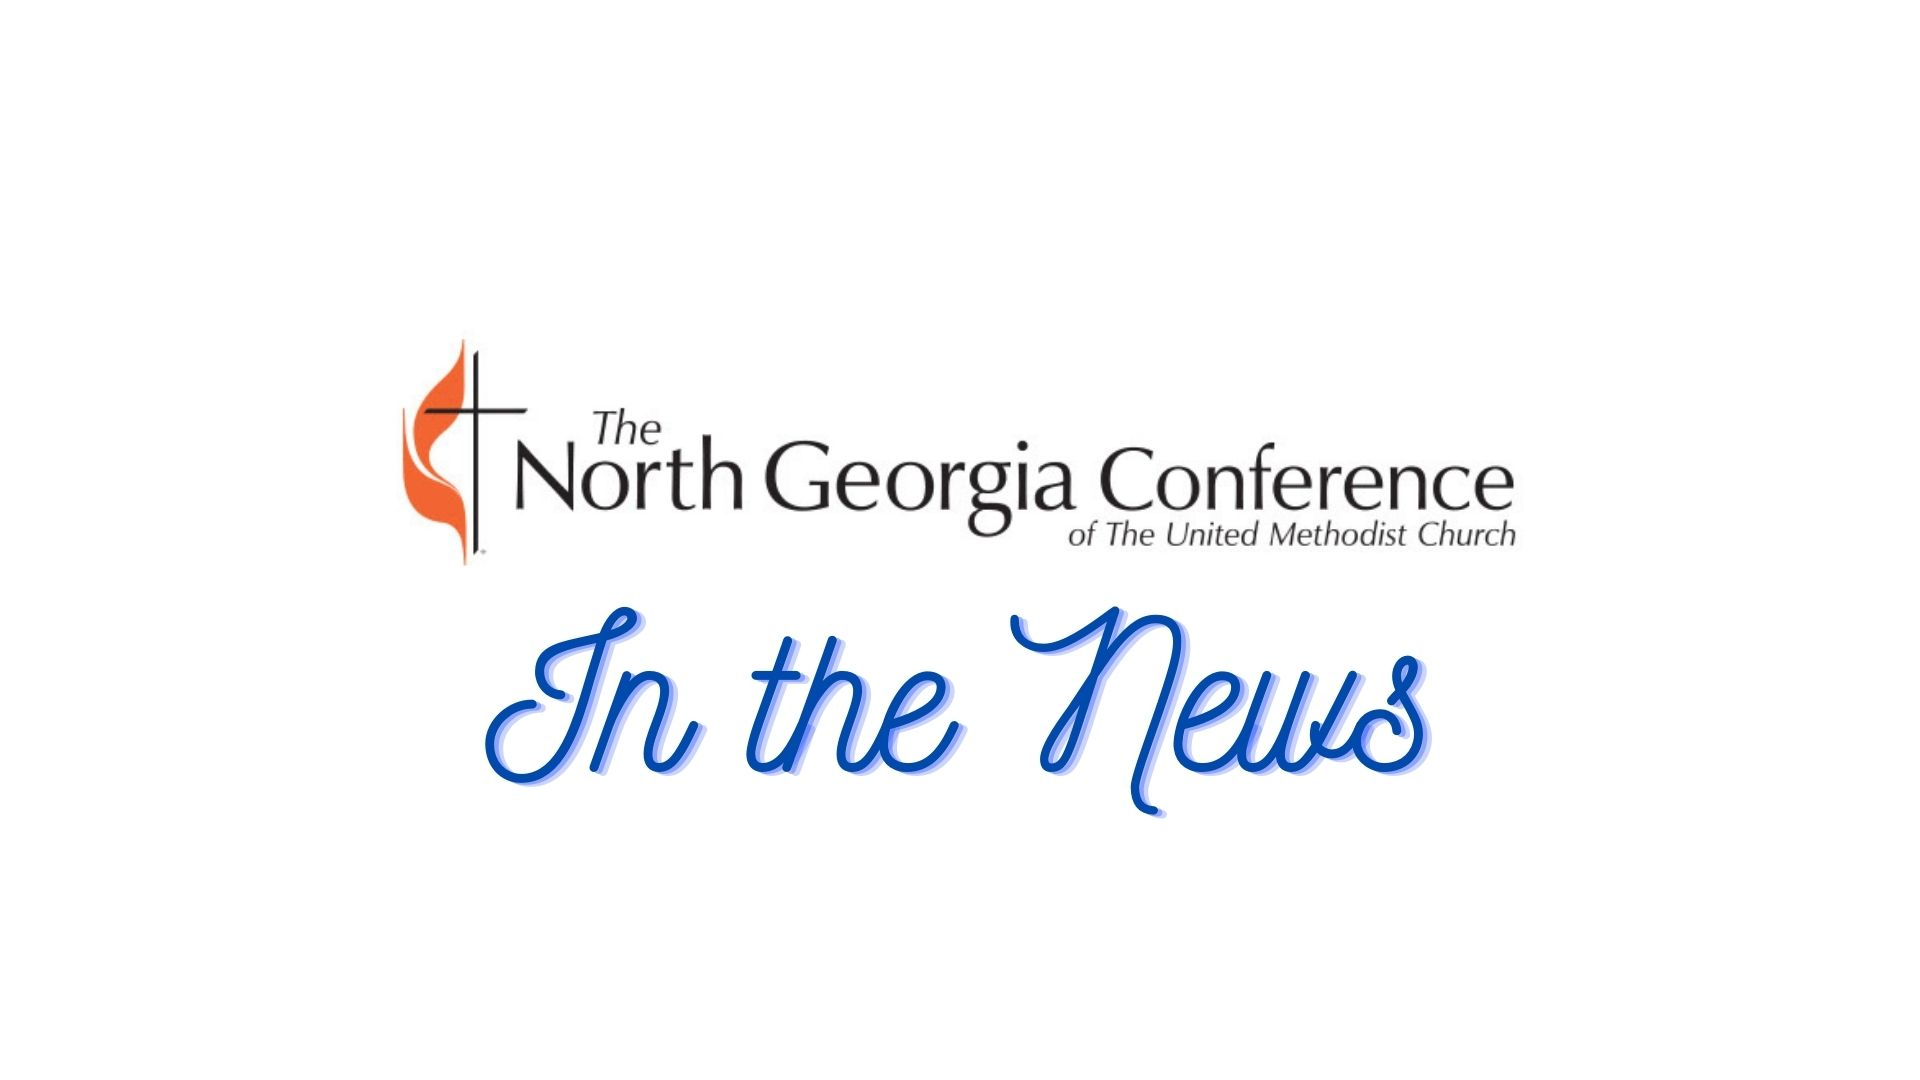 NGUMC in the news